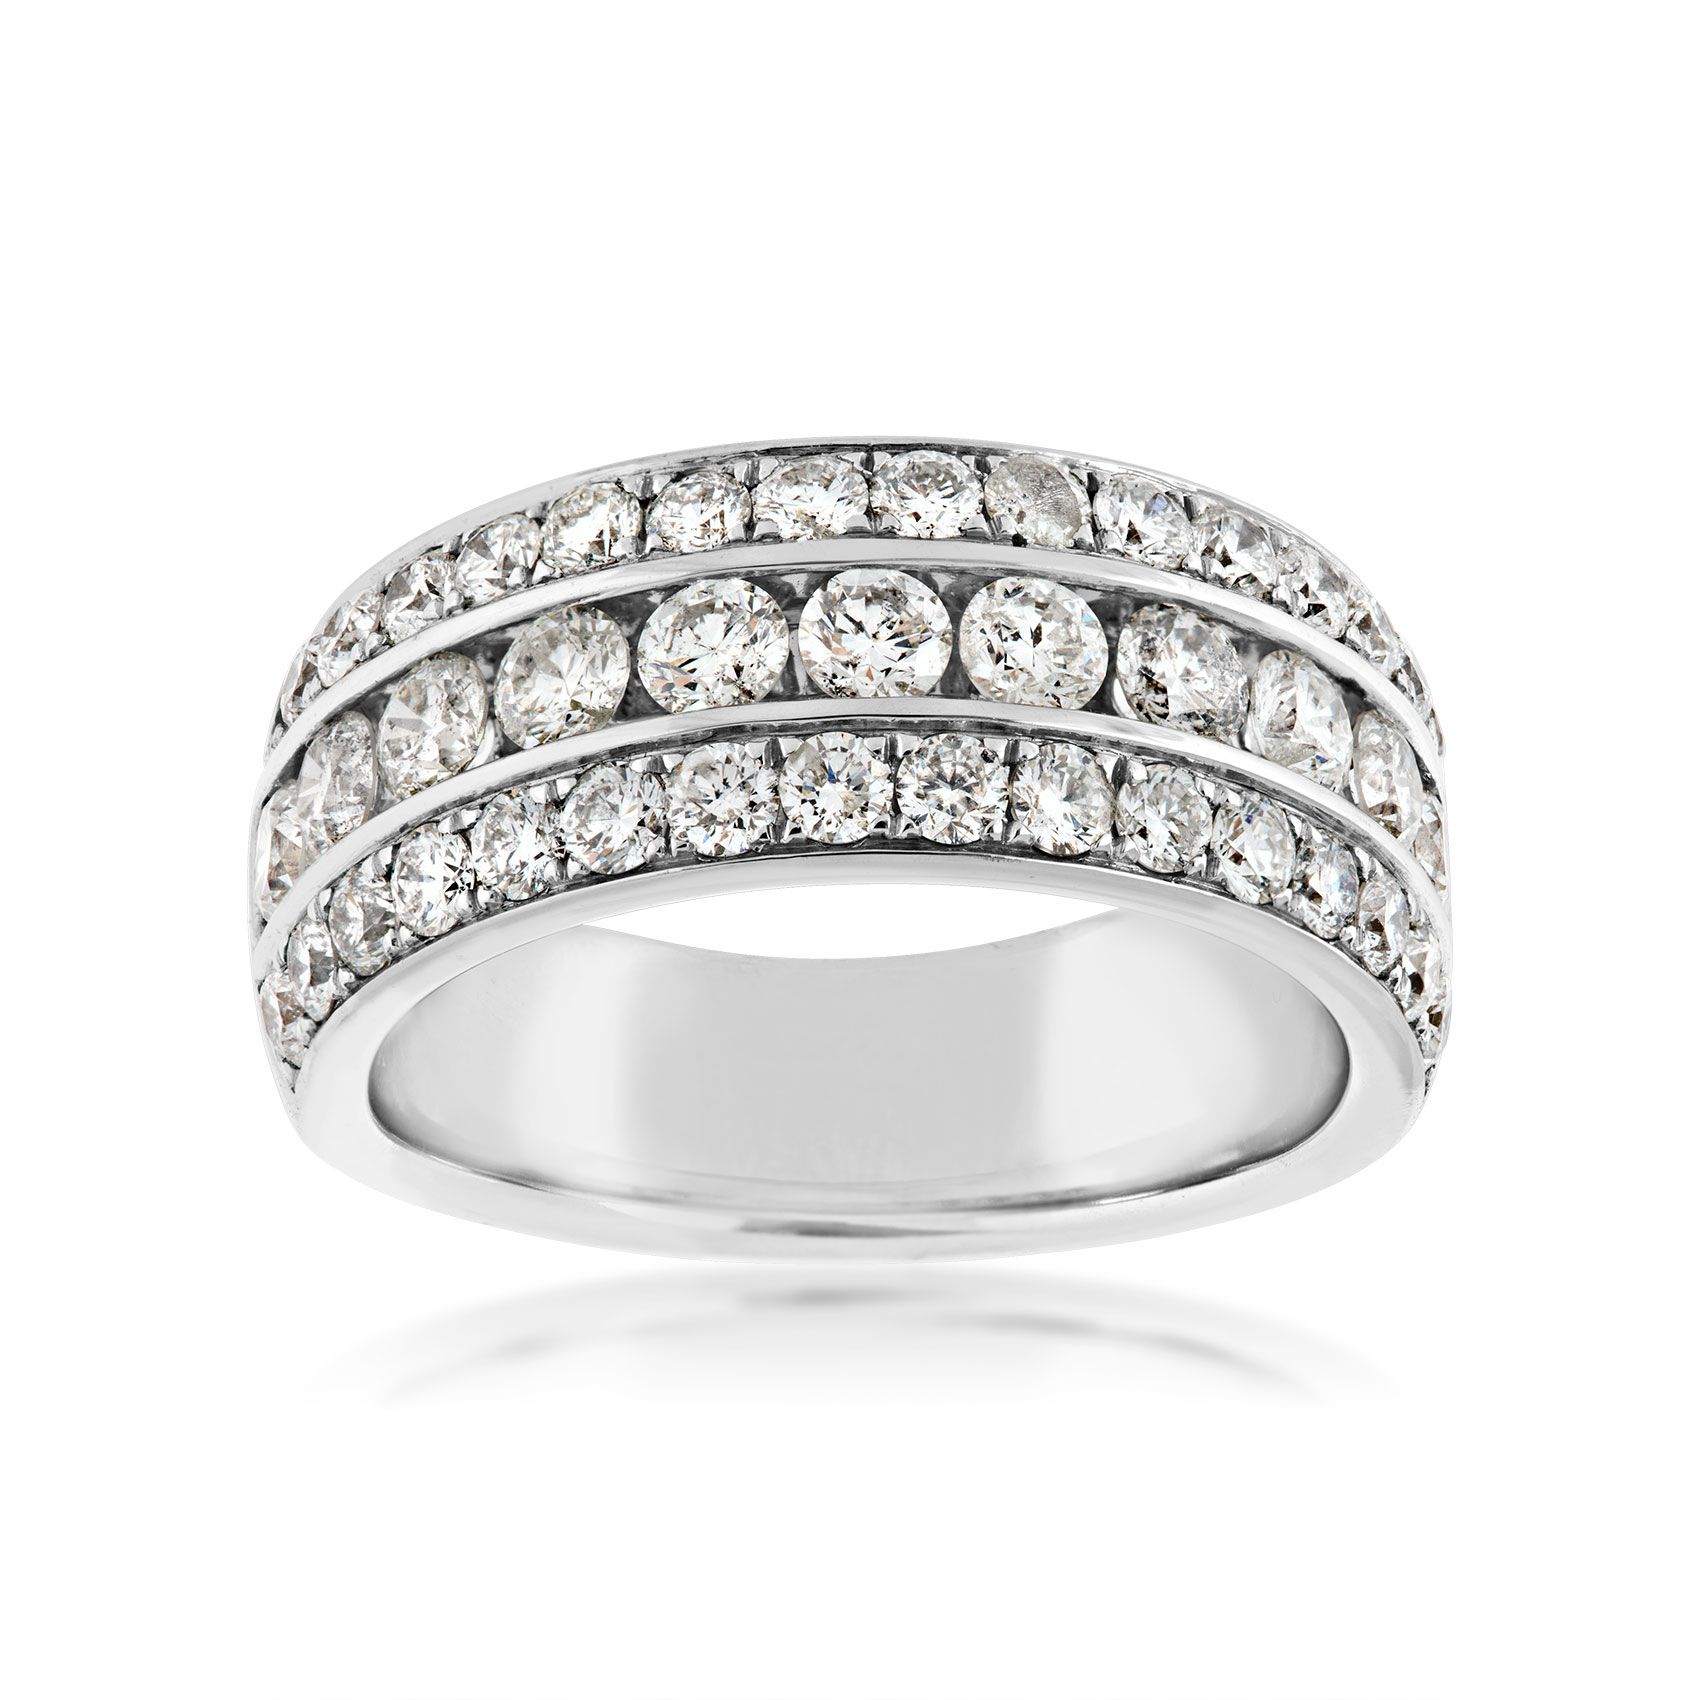 2 Ct. Tw. Diamond 3 Row Anniversary Ring In 14K White Gold – Jm2649 Rg14W070 Regarding Most Up To Date Diamond Three Row Anniversary Bands In White Gold (Gallery 21 of 25)